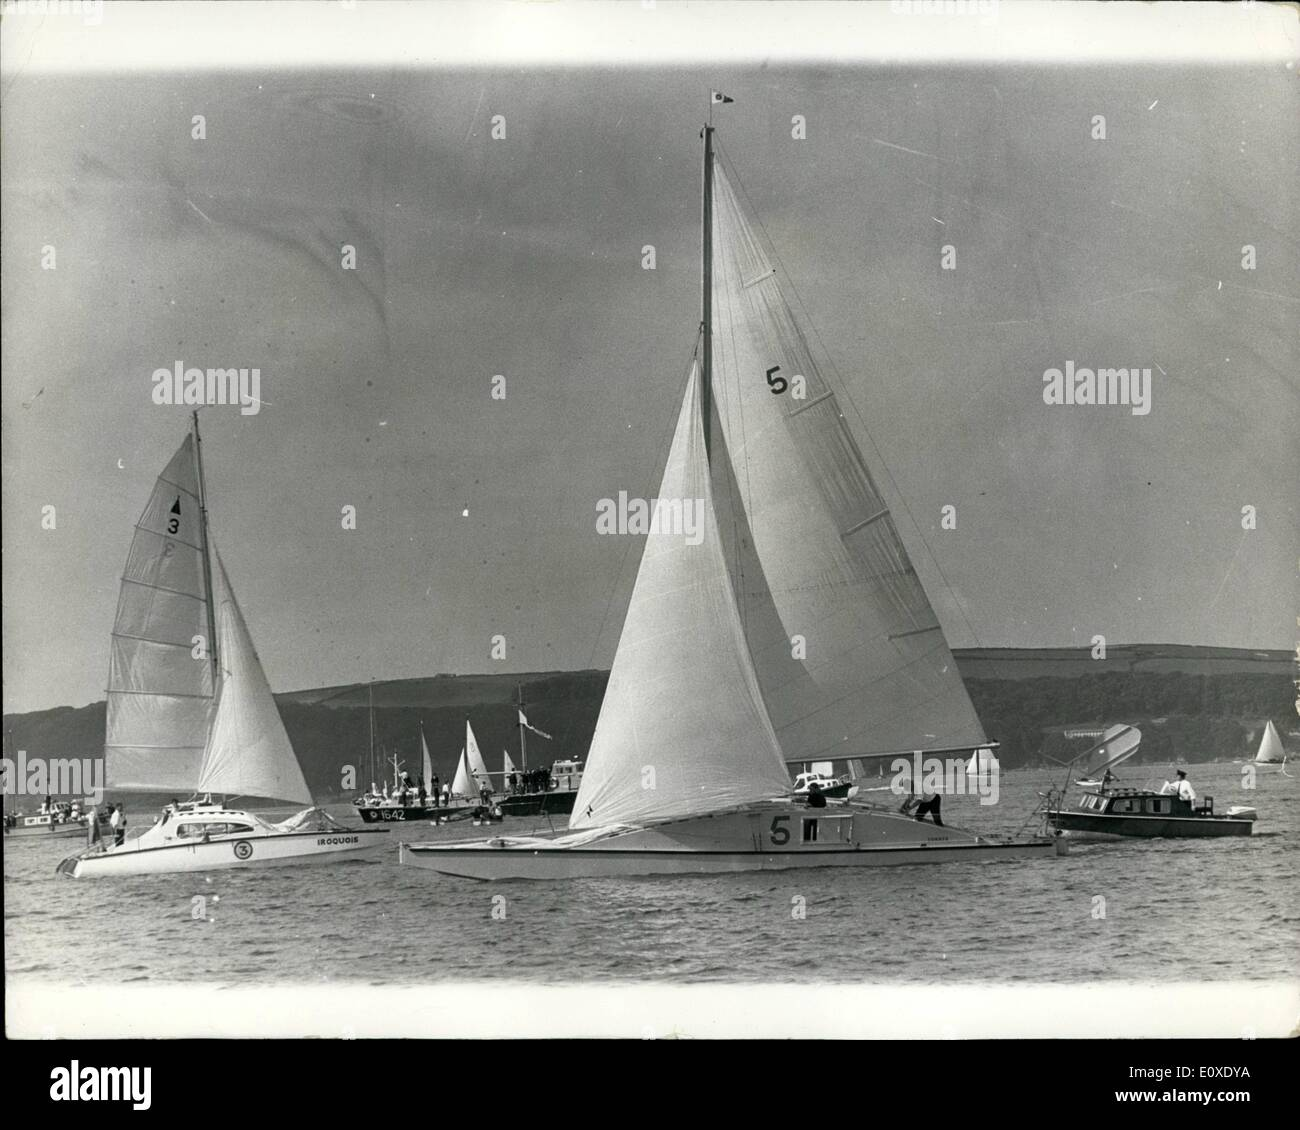 Jul. 03, 1966 - 3-7-66 The first two handed round-Britain sailing race. Competitors set off from Plymouth. Out from Stock Photo